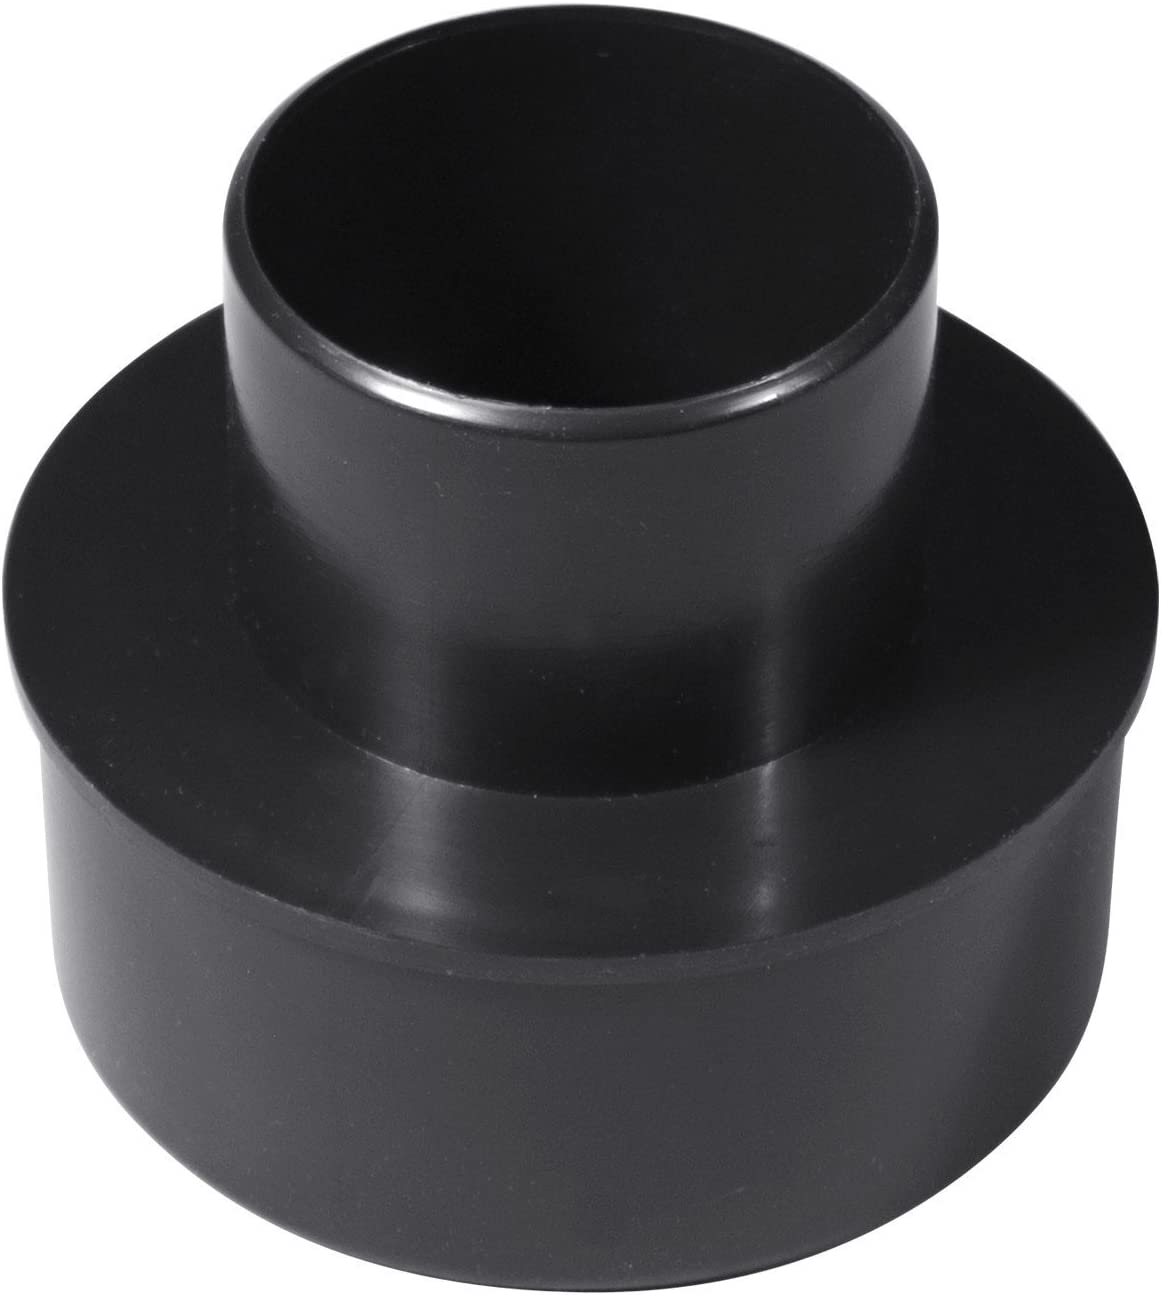 POWERTEC 70104 4-Inch to 2-1/2-Inch Reducer